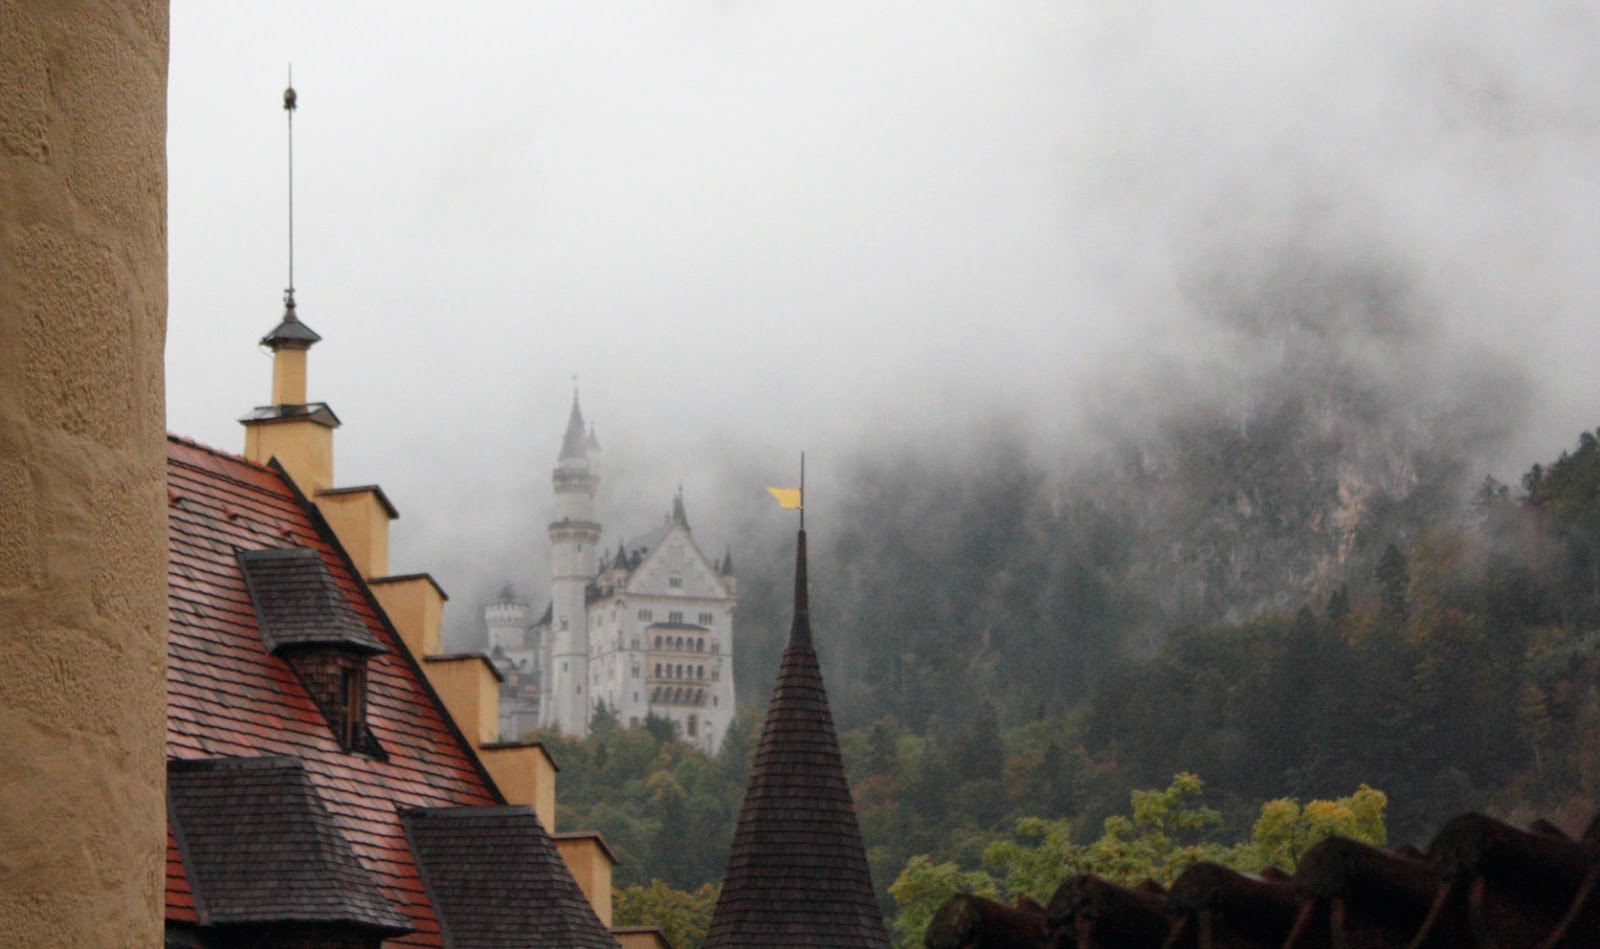 Neuschwanstein Castle in the mist - The Tipsy Terrier blog